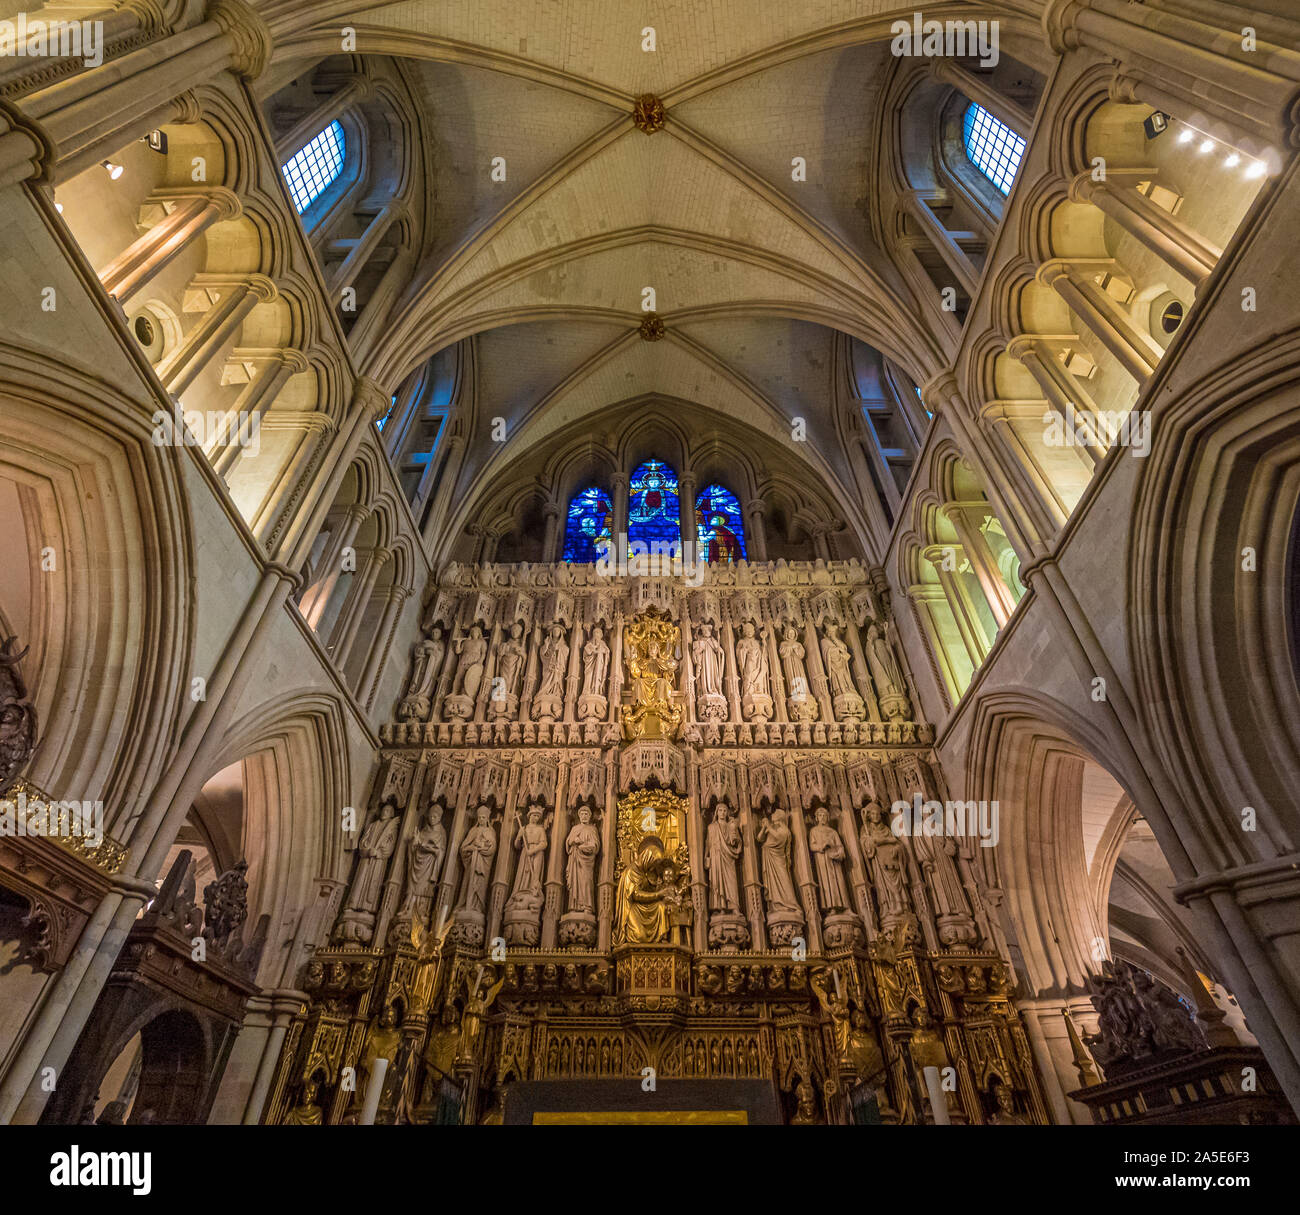 Interior of Southwark Cathedral (The Cathedral and Collegiate Church of St Saviour and St Mary Overie), Southwark, London, UK. Stock Photo